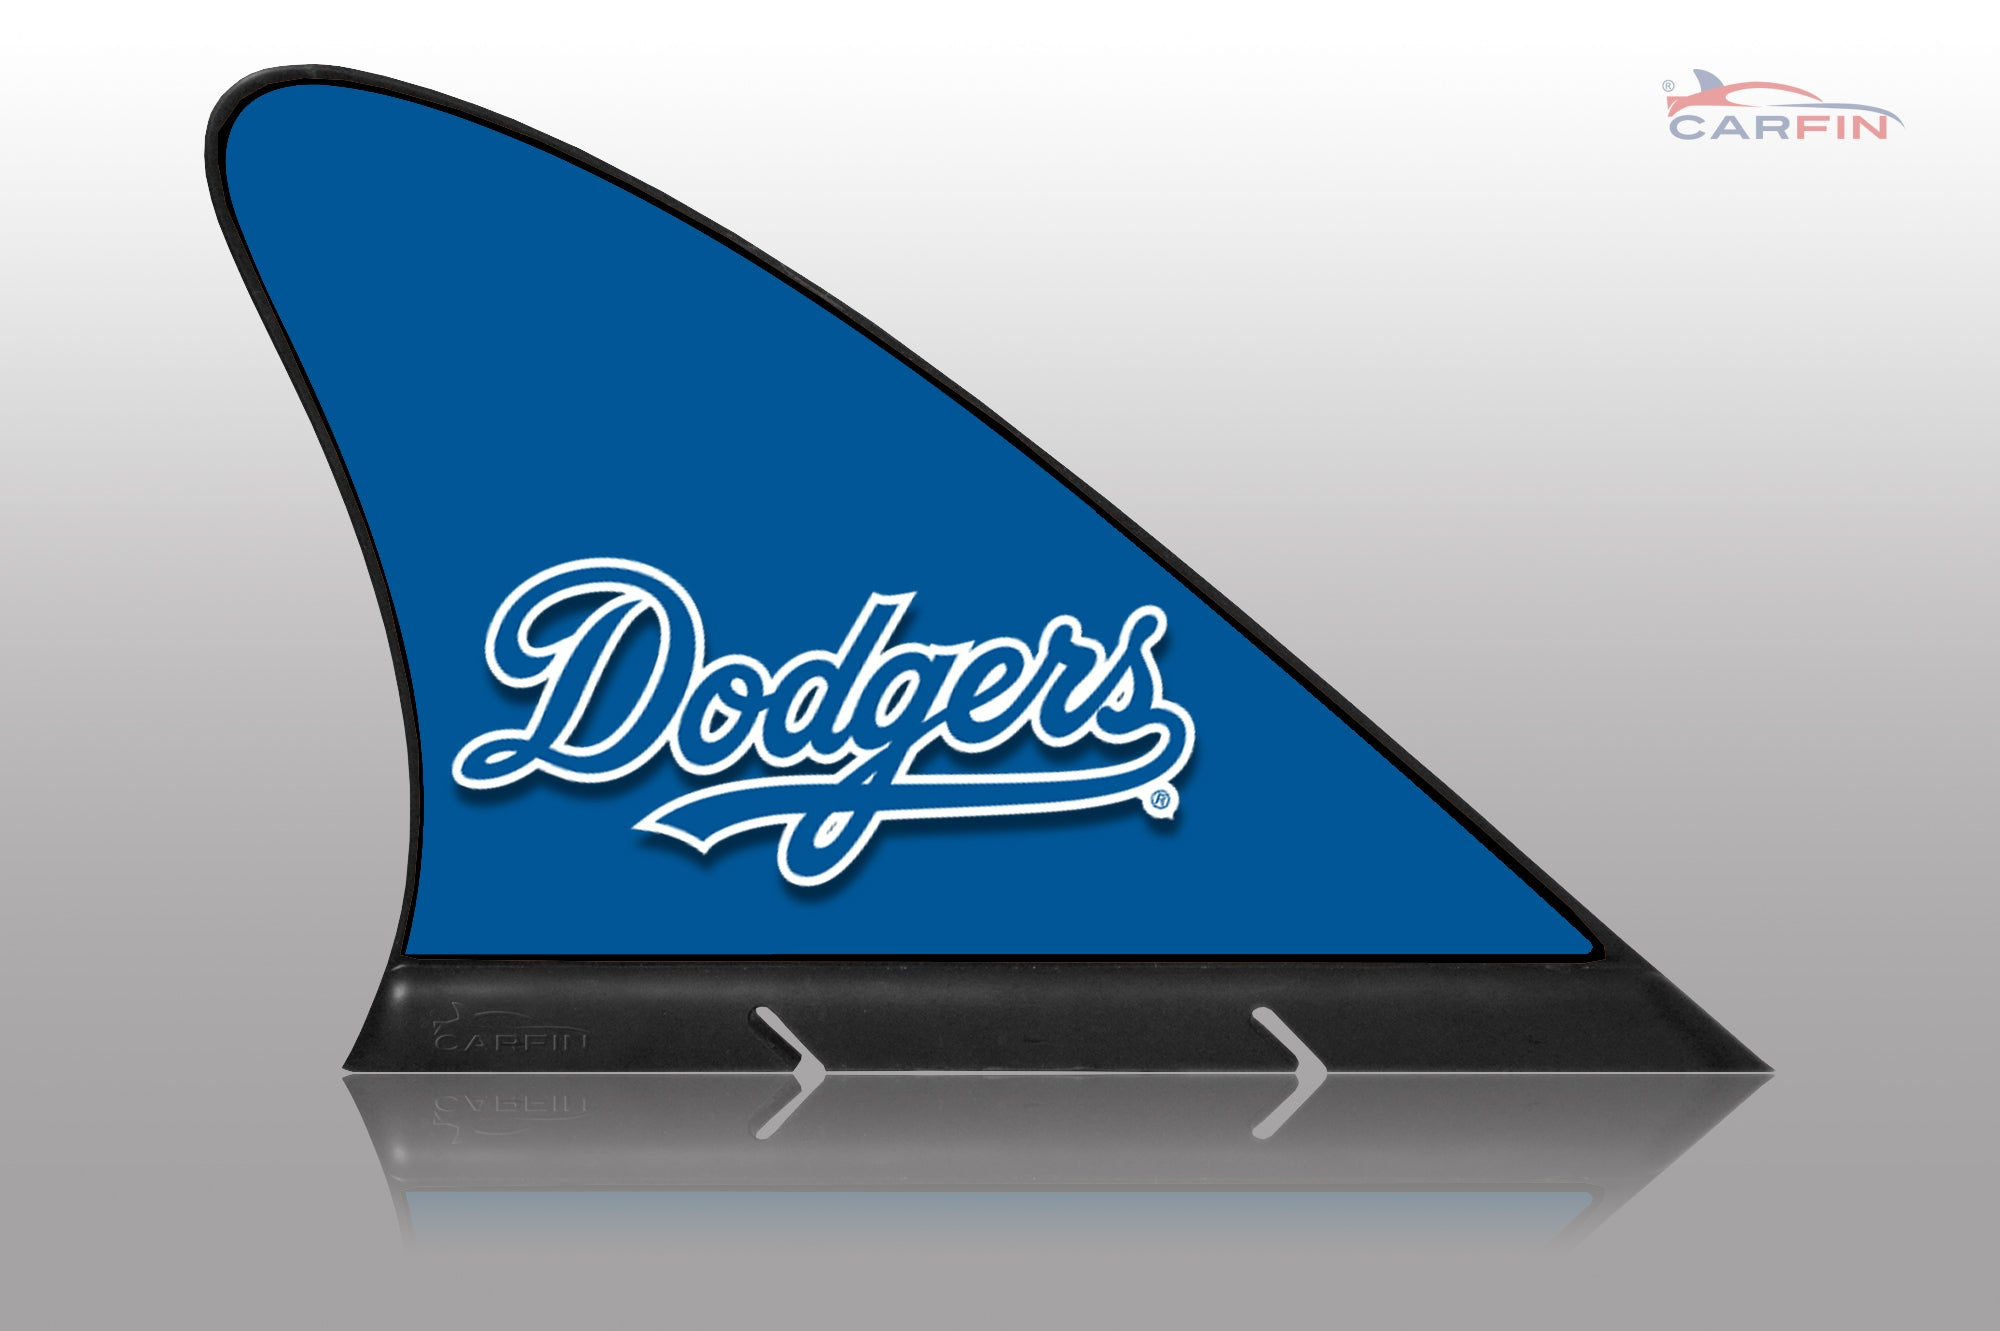 Los Angeles LA Dodgers Car Flag, CARFIN  Magnetic Car Flag. - Carfin